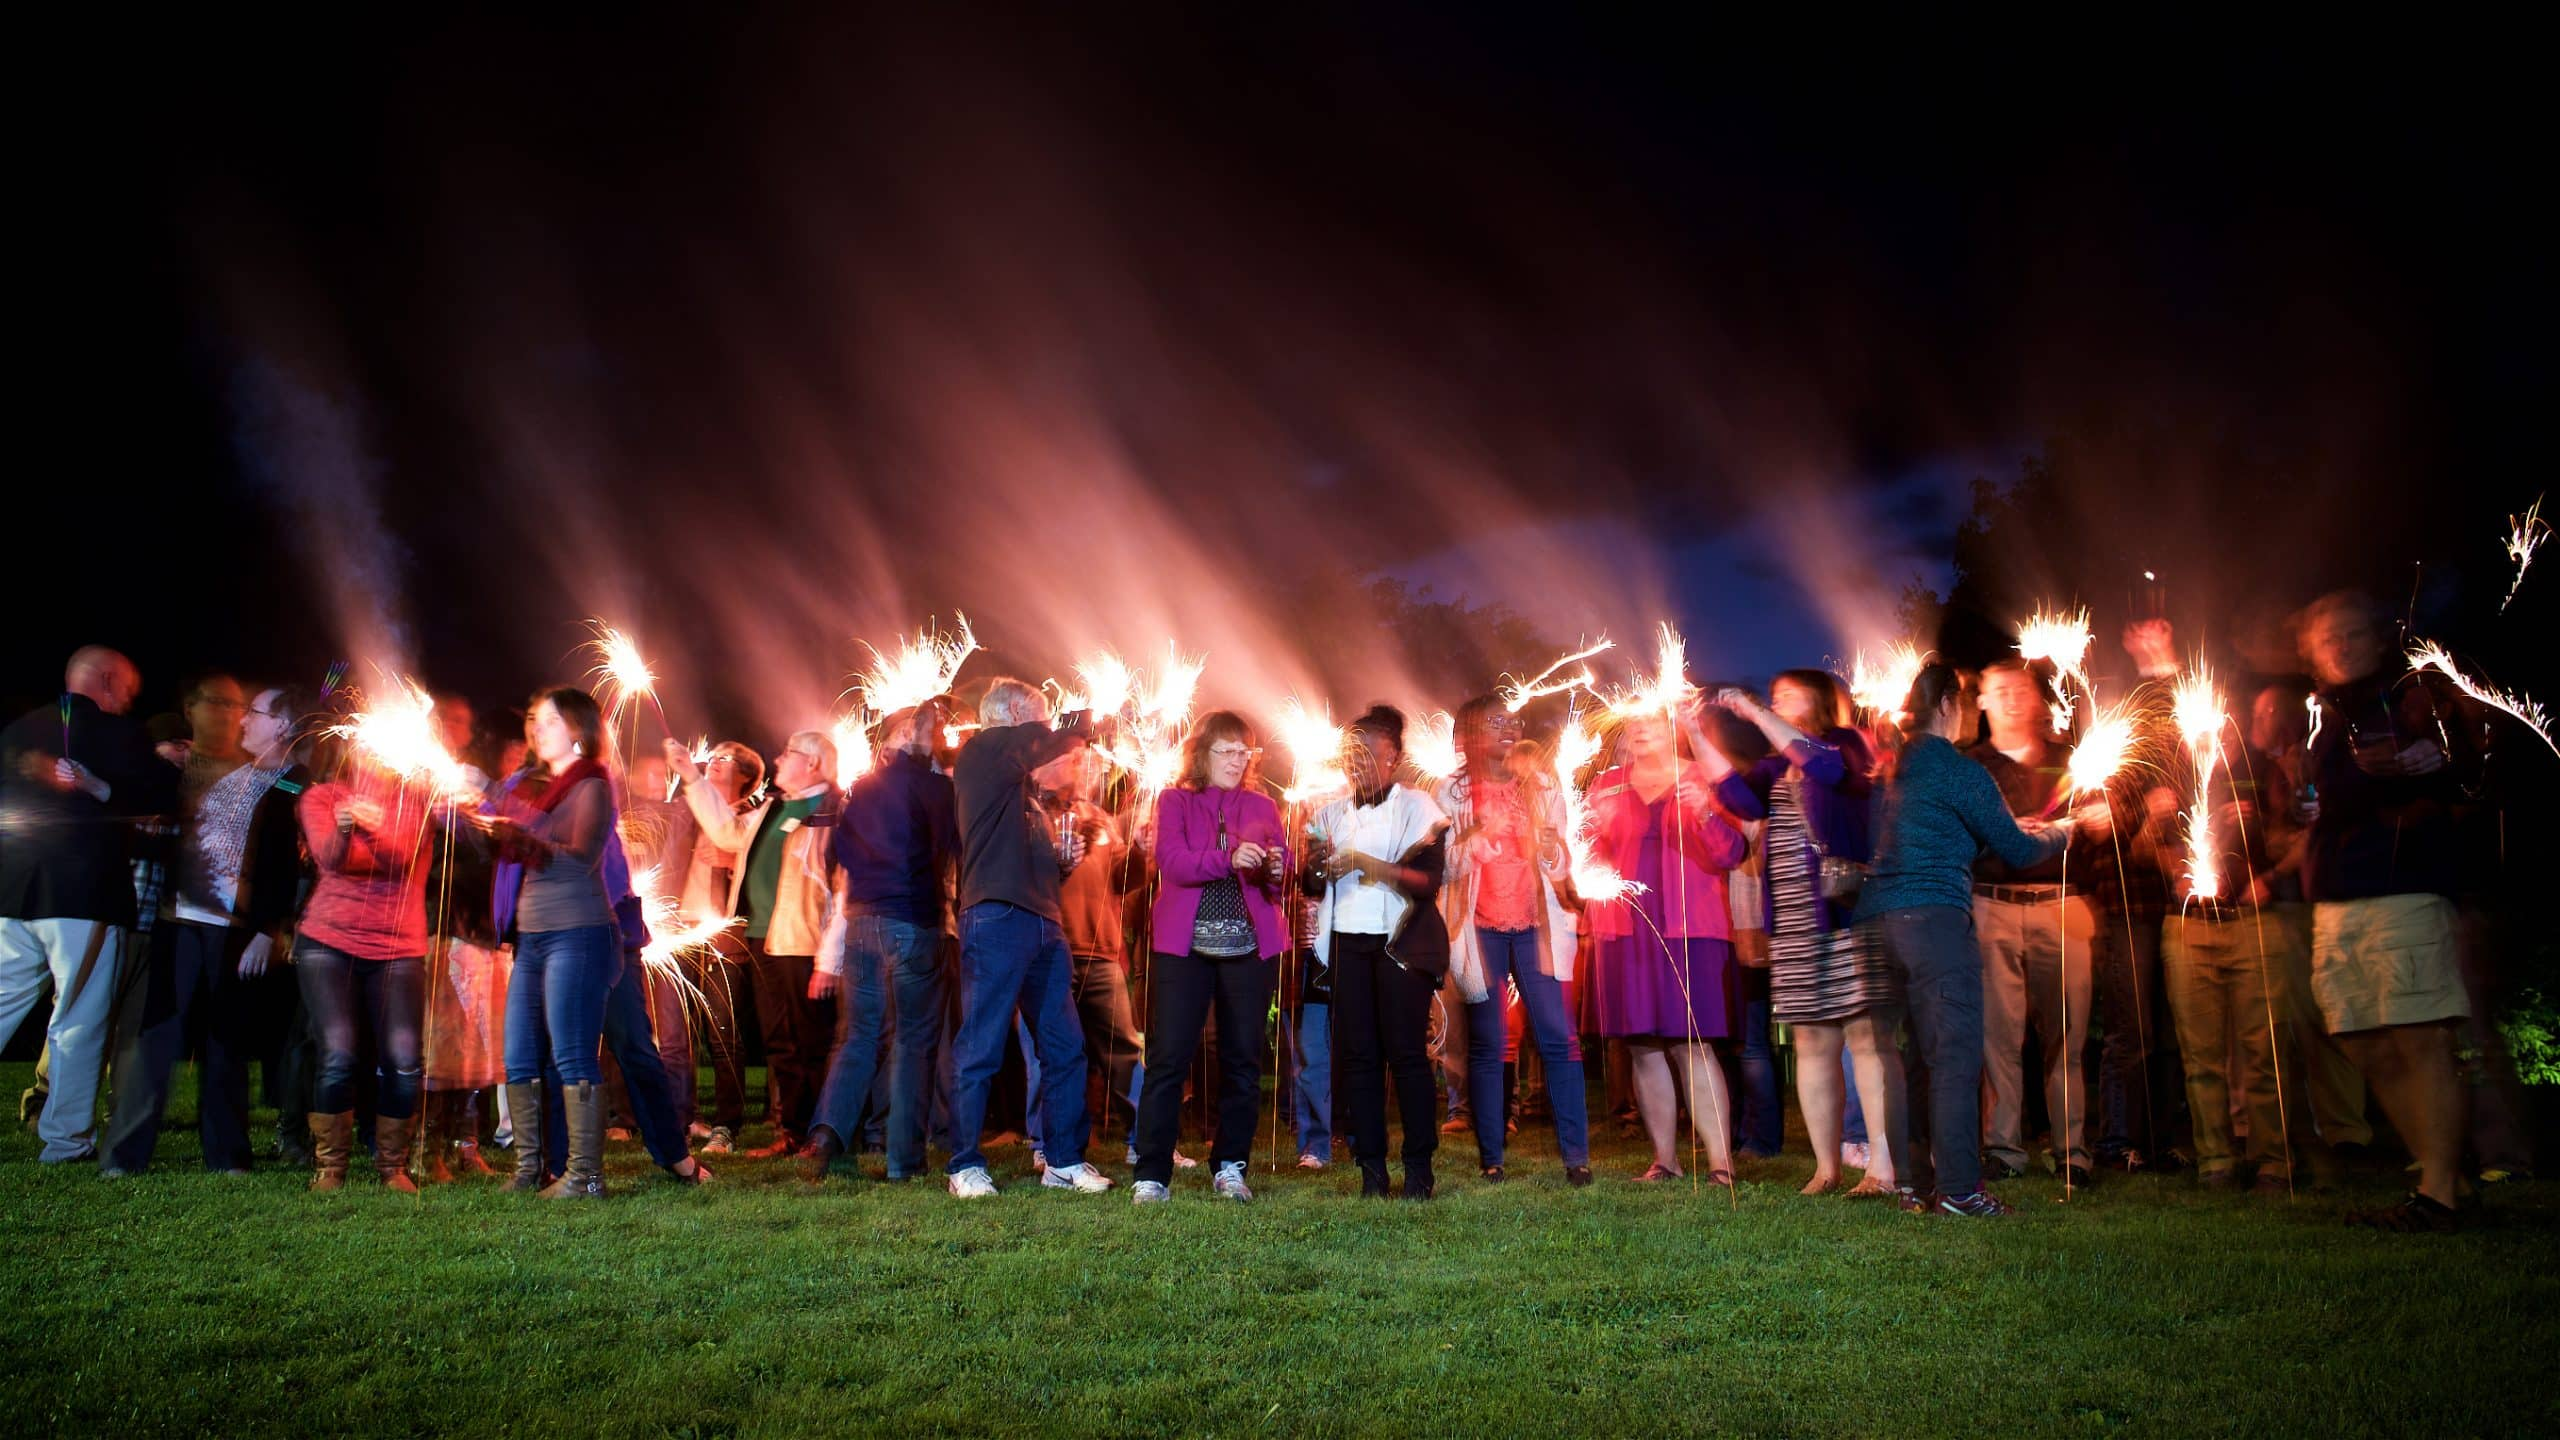 Group photo of everyone with their sparklers during the evening portion of the event.